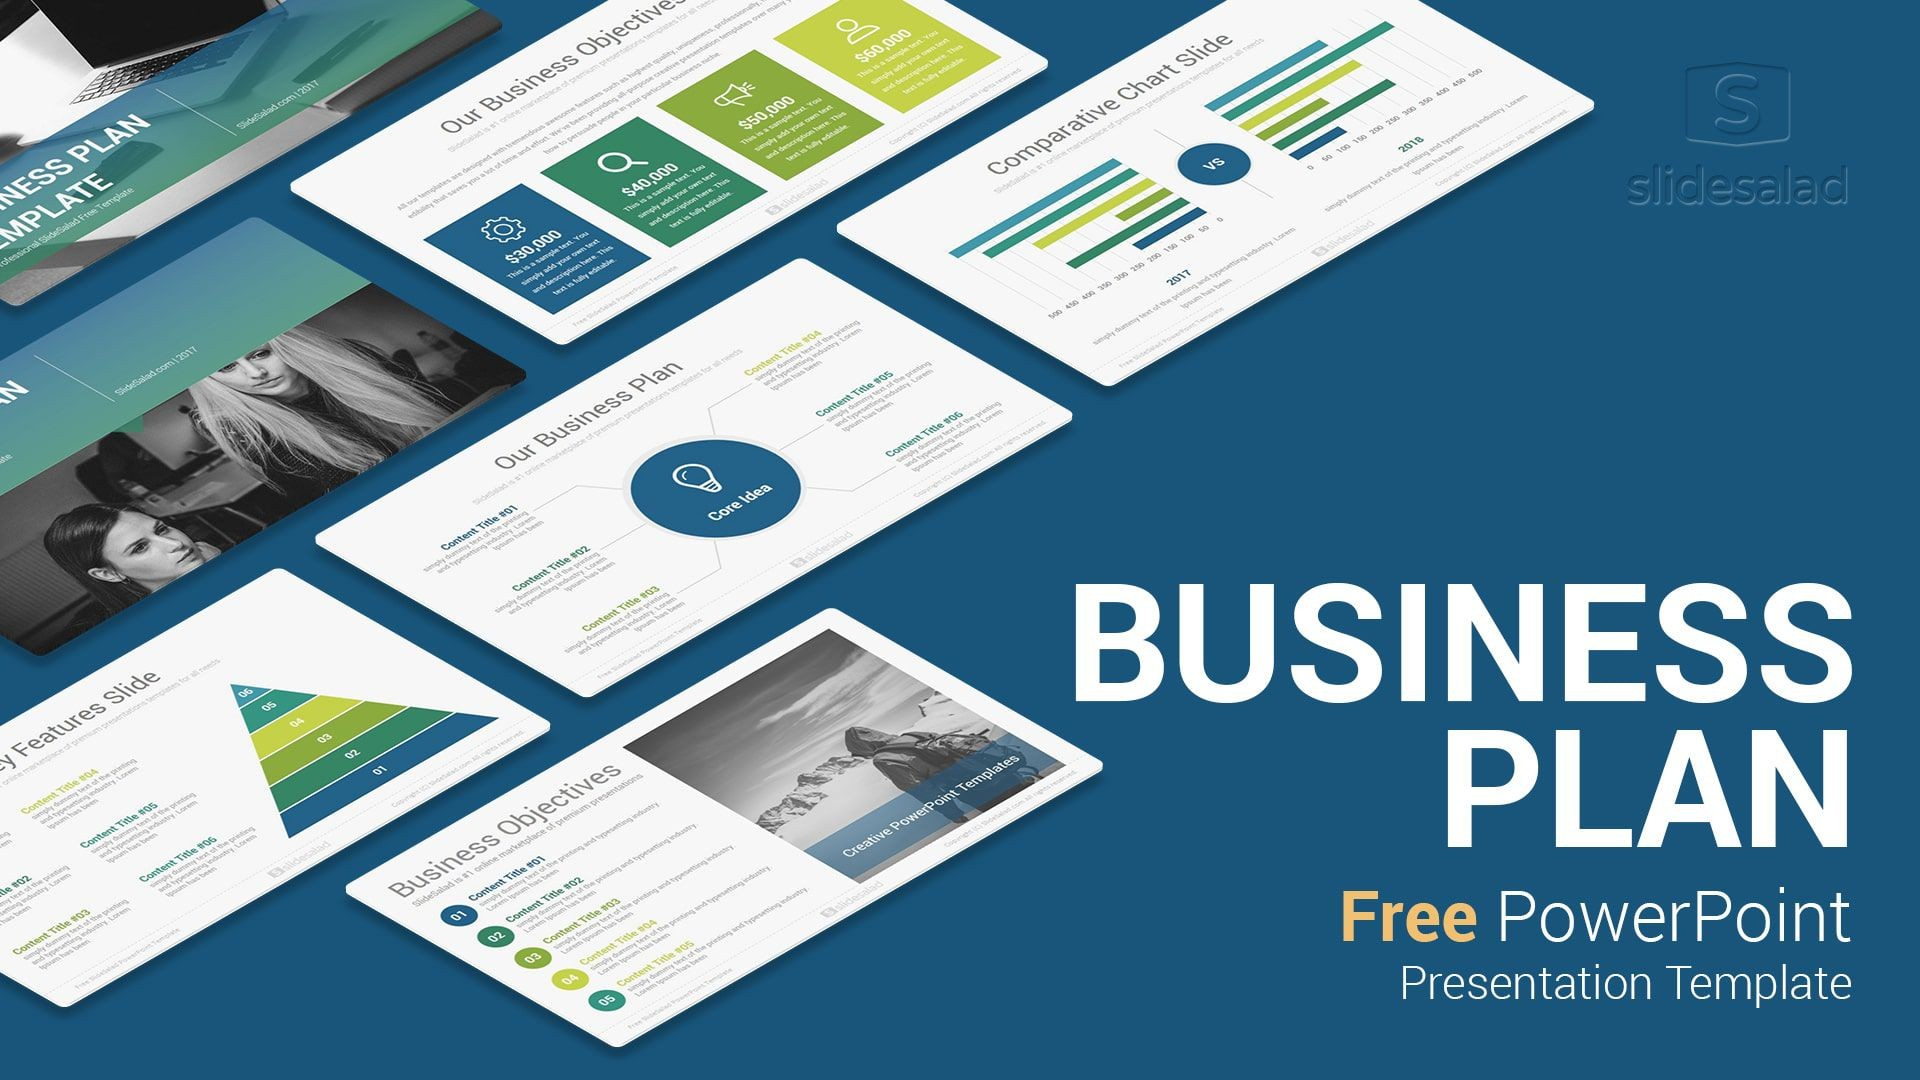 007 Unusual Free Busines Proposal Template Ppt High Definition  Best Plan 20201920